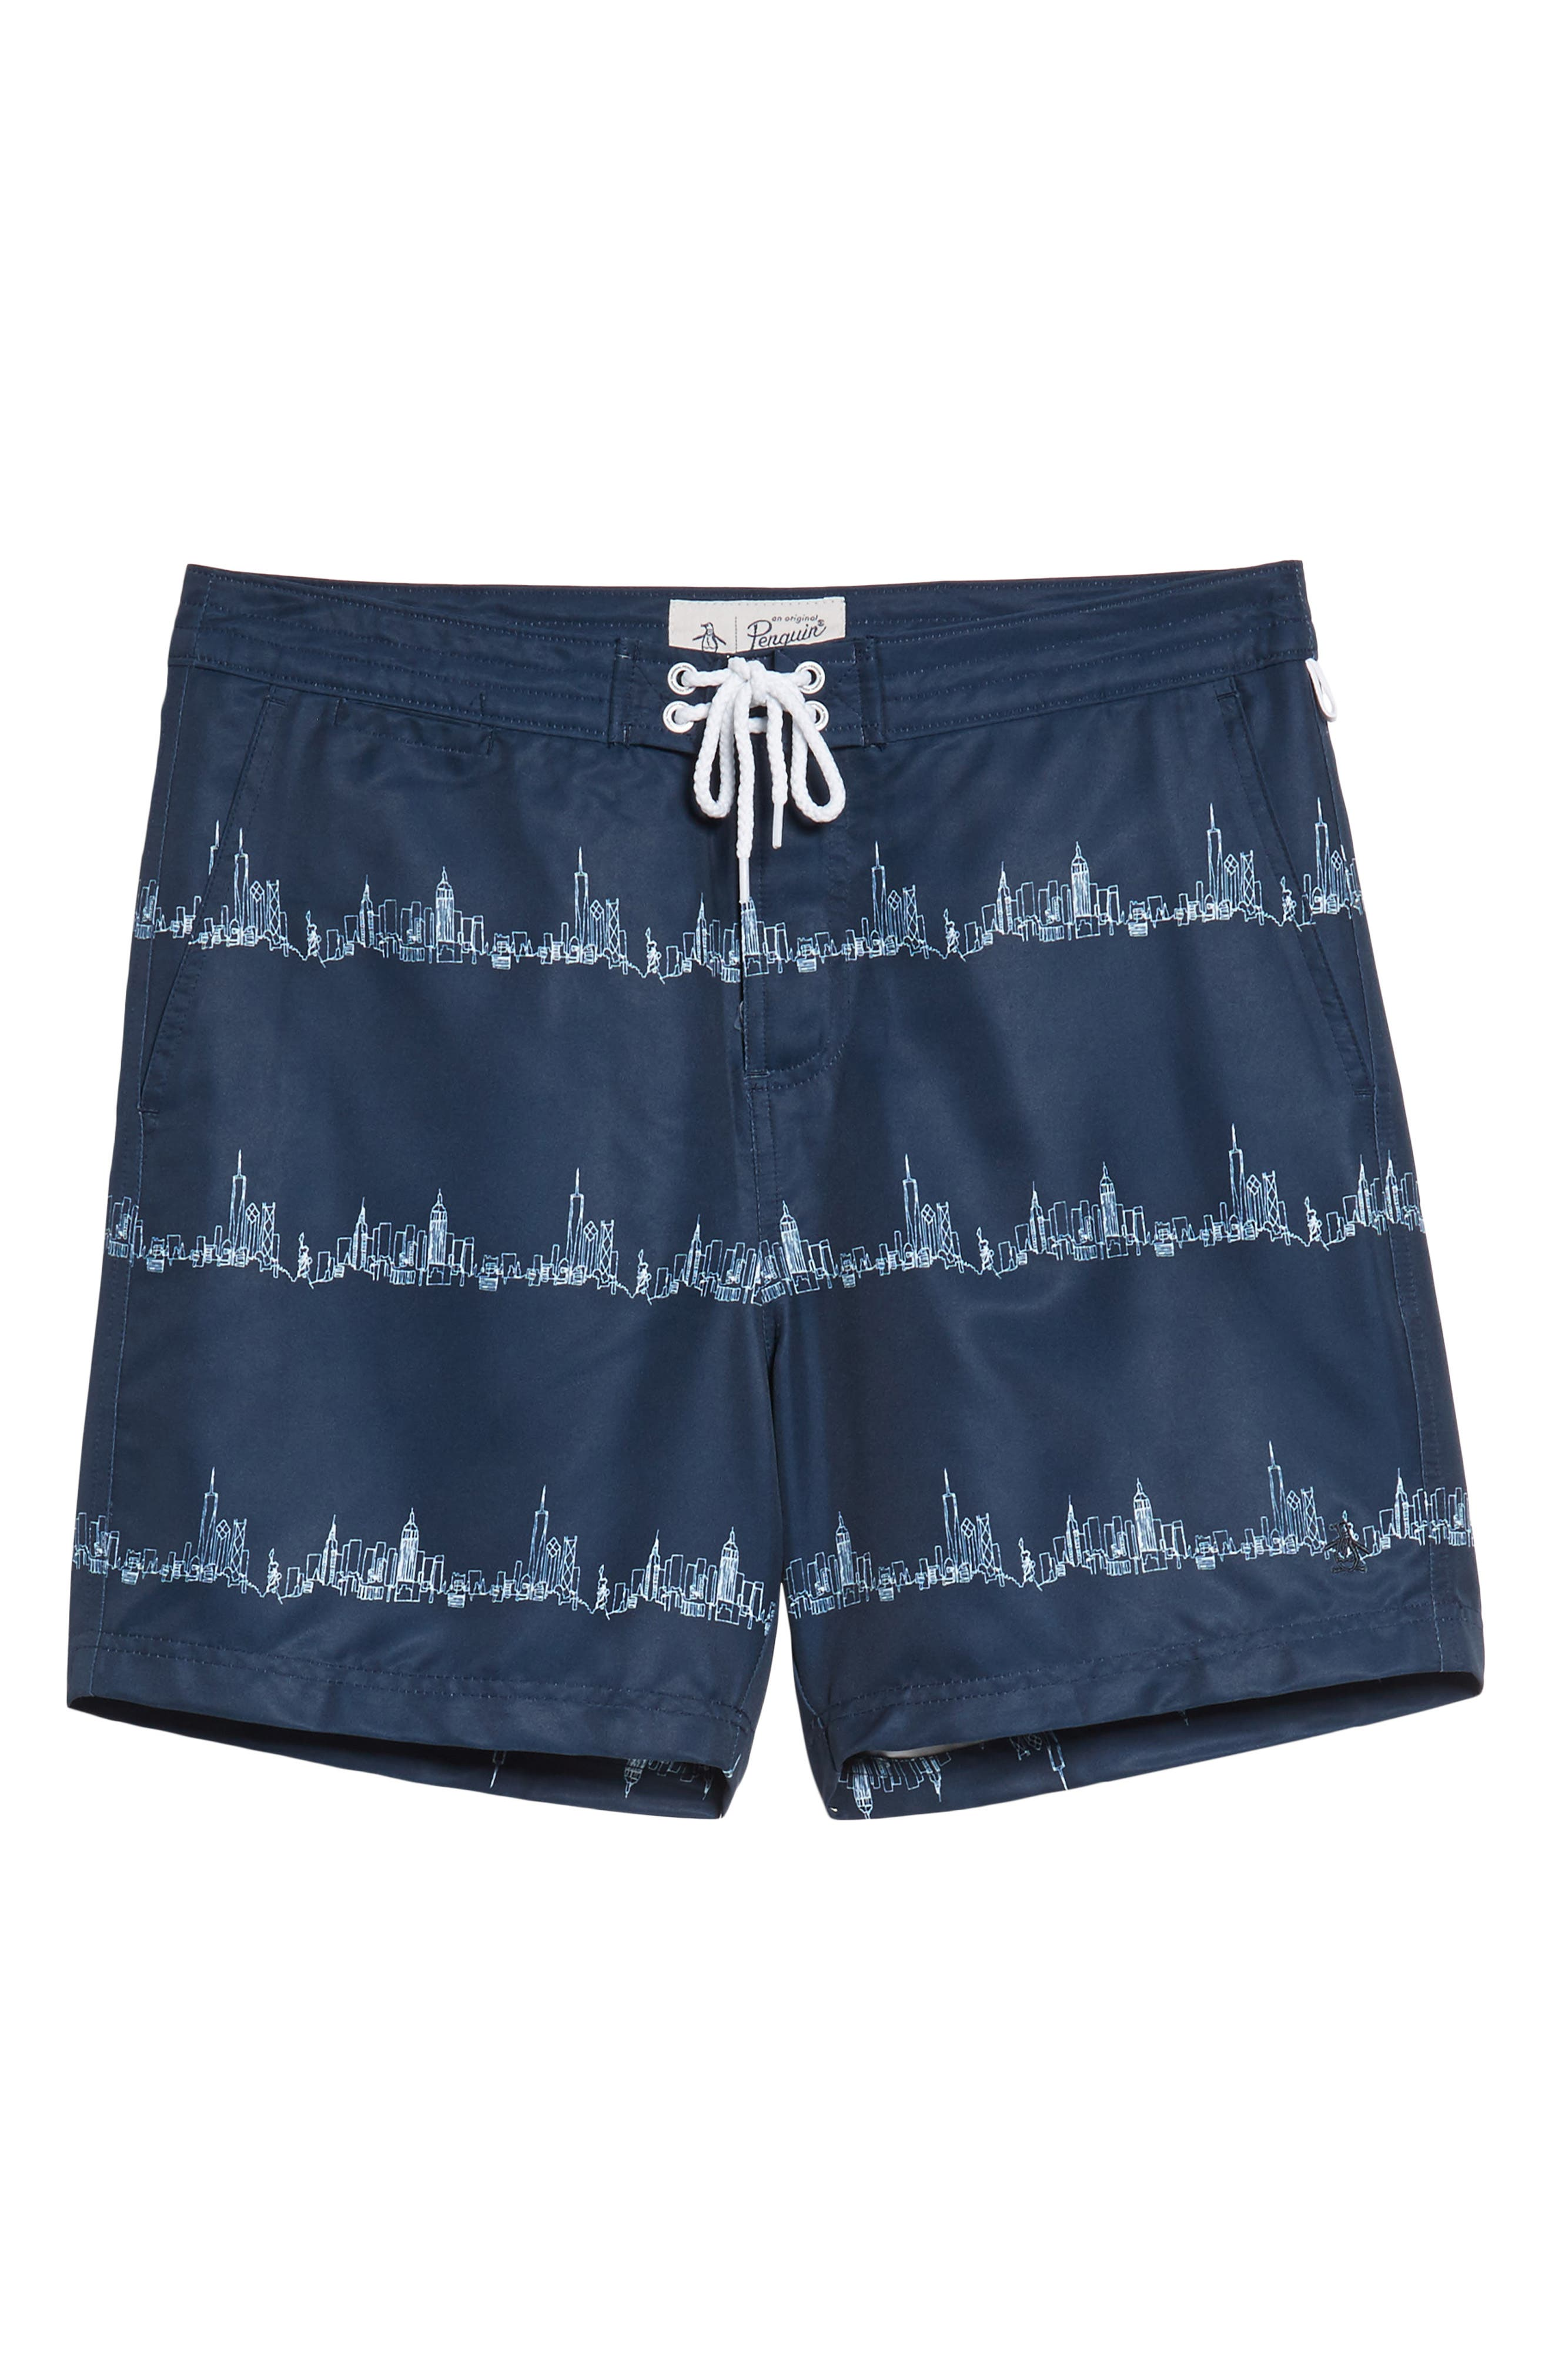 Fixed Stretch Volley Board Shorts,                             Alternate thumbnail 7, color,                             Dark Sapphire